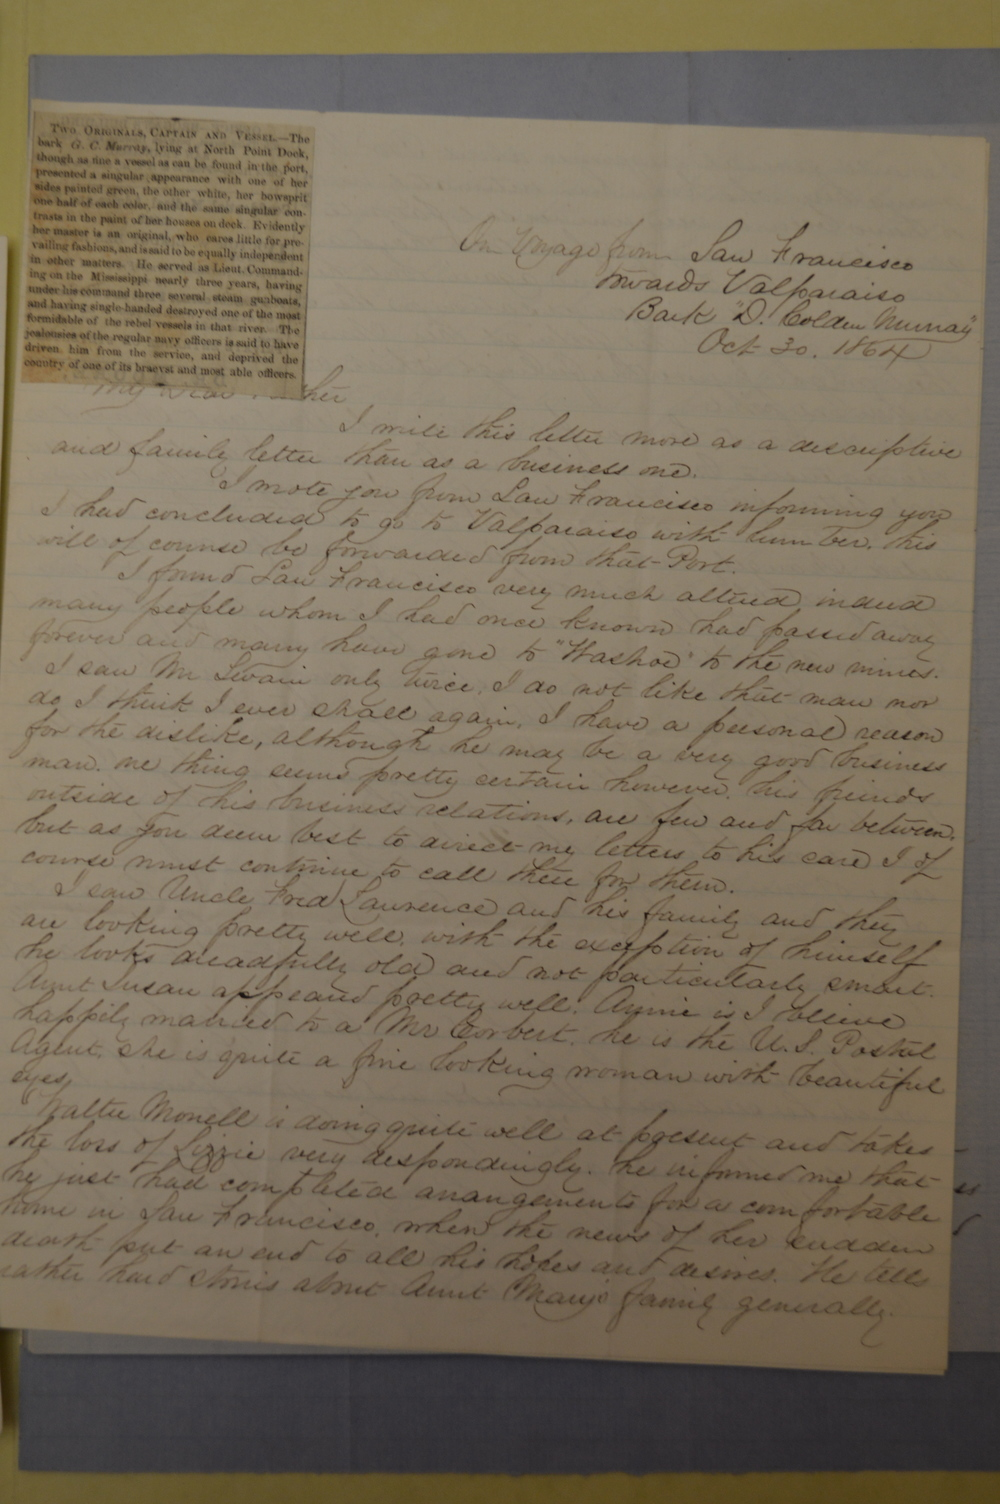 The letter from Daniel P. Upton that included the article he personally  pasted on the letterhead for his Father to review